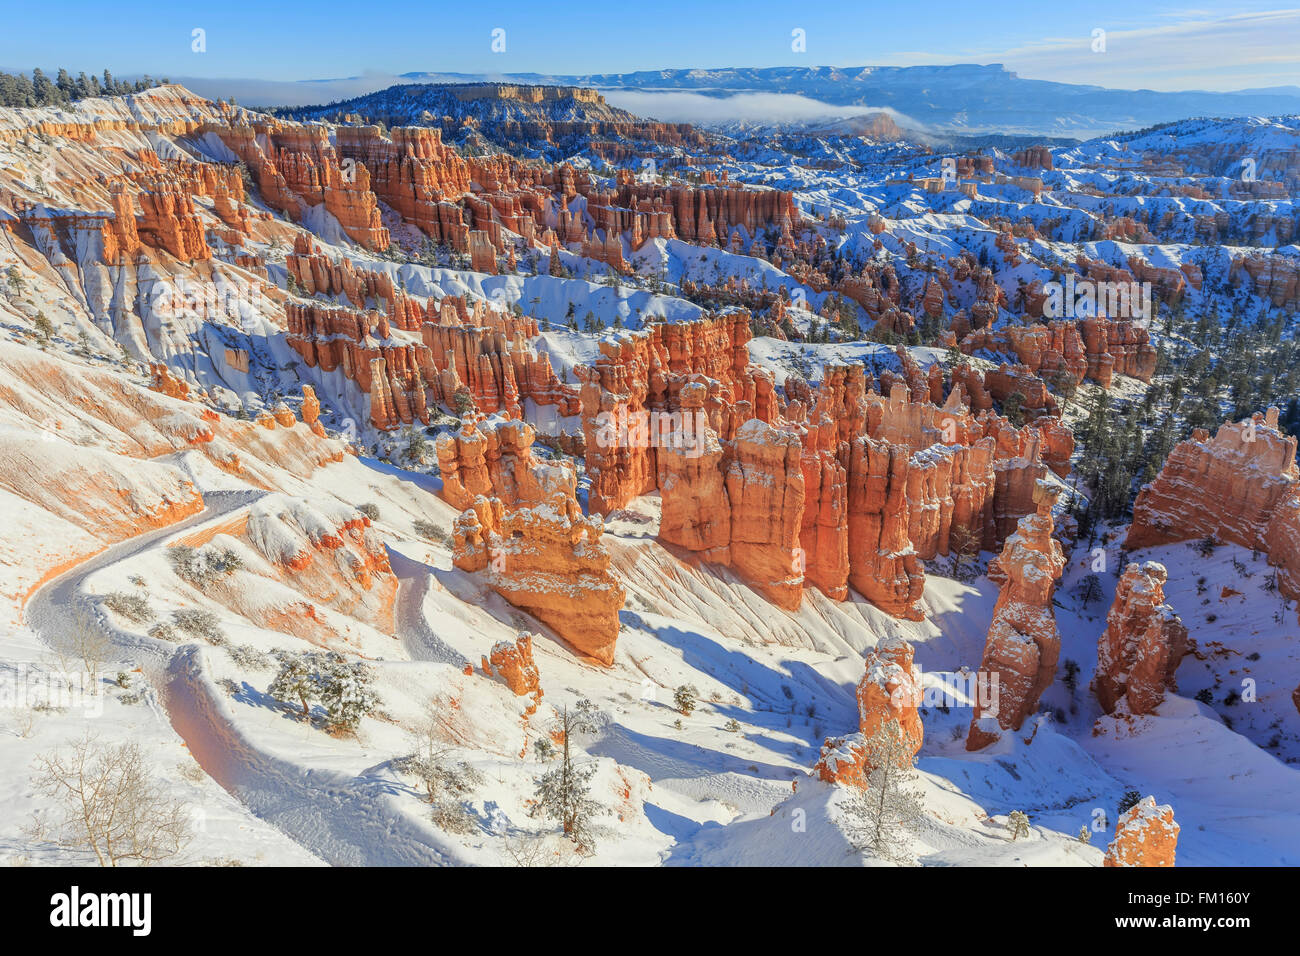 Superb view of Sunset Point, Bryce Canyon National Park at Utah - Stock Image